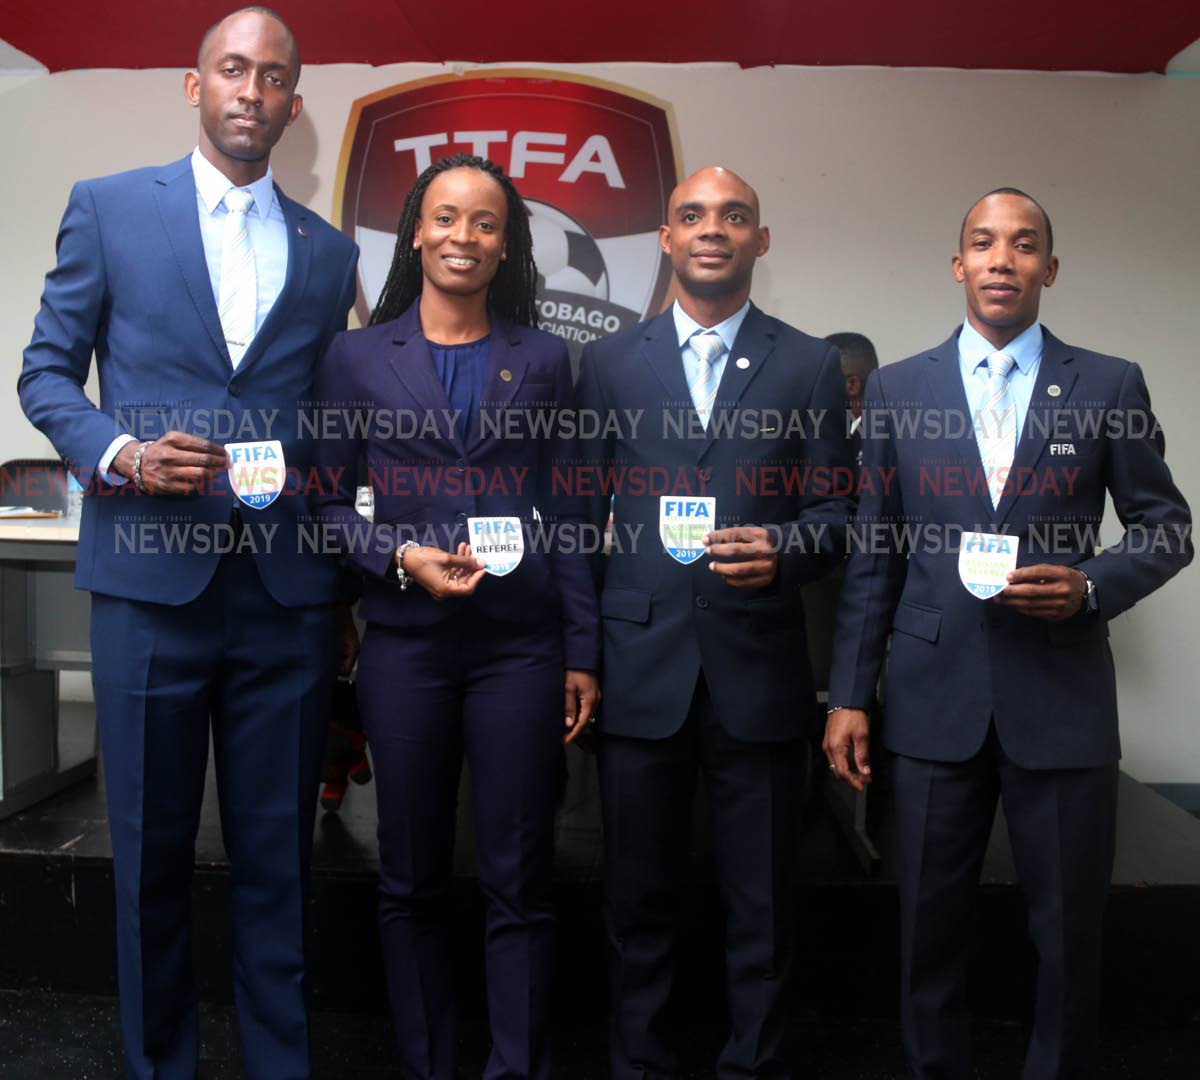 FIFA REFEREES: Showing off their 2019 FIFA badges yesterday are (from left) Caleb Wales, Crystal Sobers, Joseph Bertrand and Ainsley Rochard, at the TT Football Association head office at the Ato Boldon Stadium in Couva. PHOTO BY ANSEL JEBODH